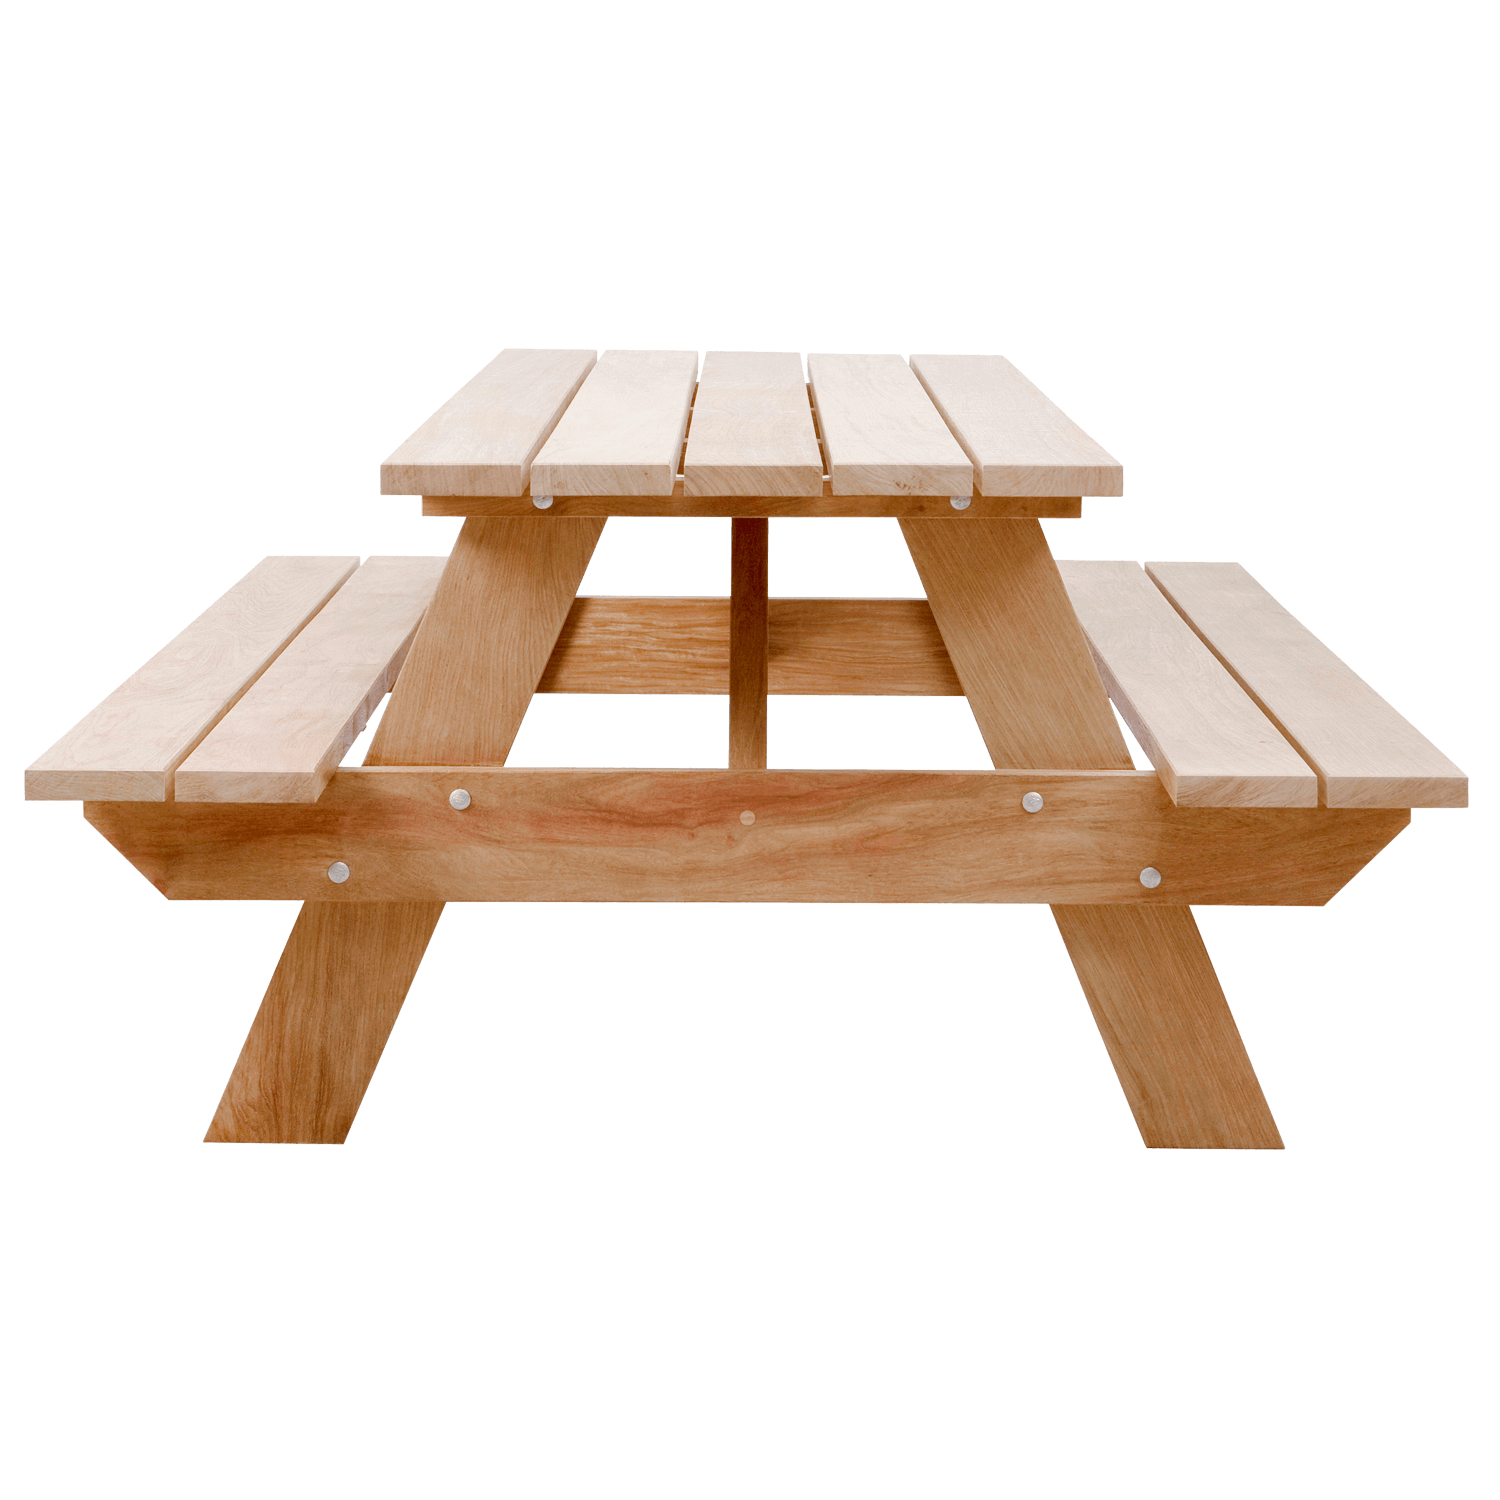 Picnic picture free download. Clipart table picknick